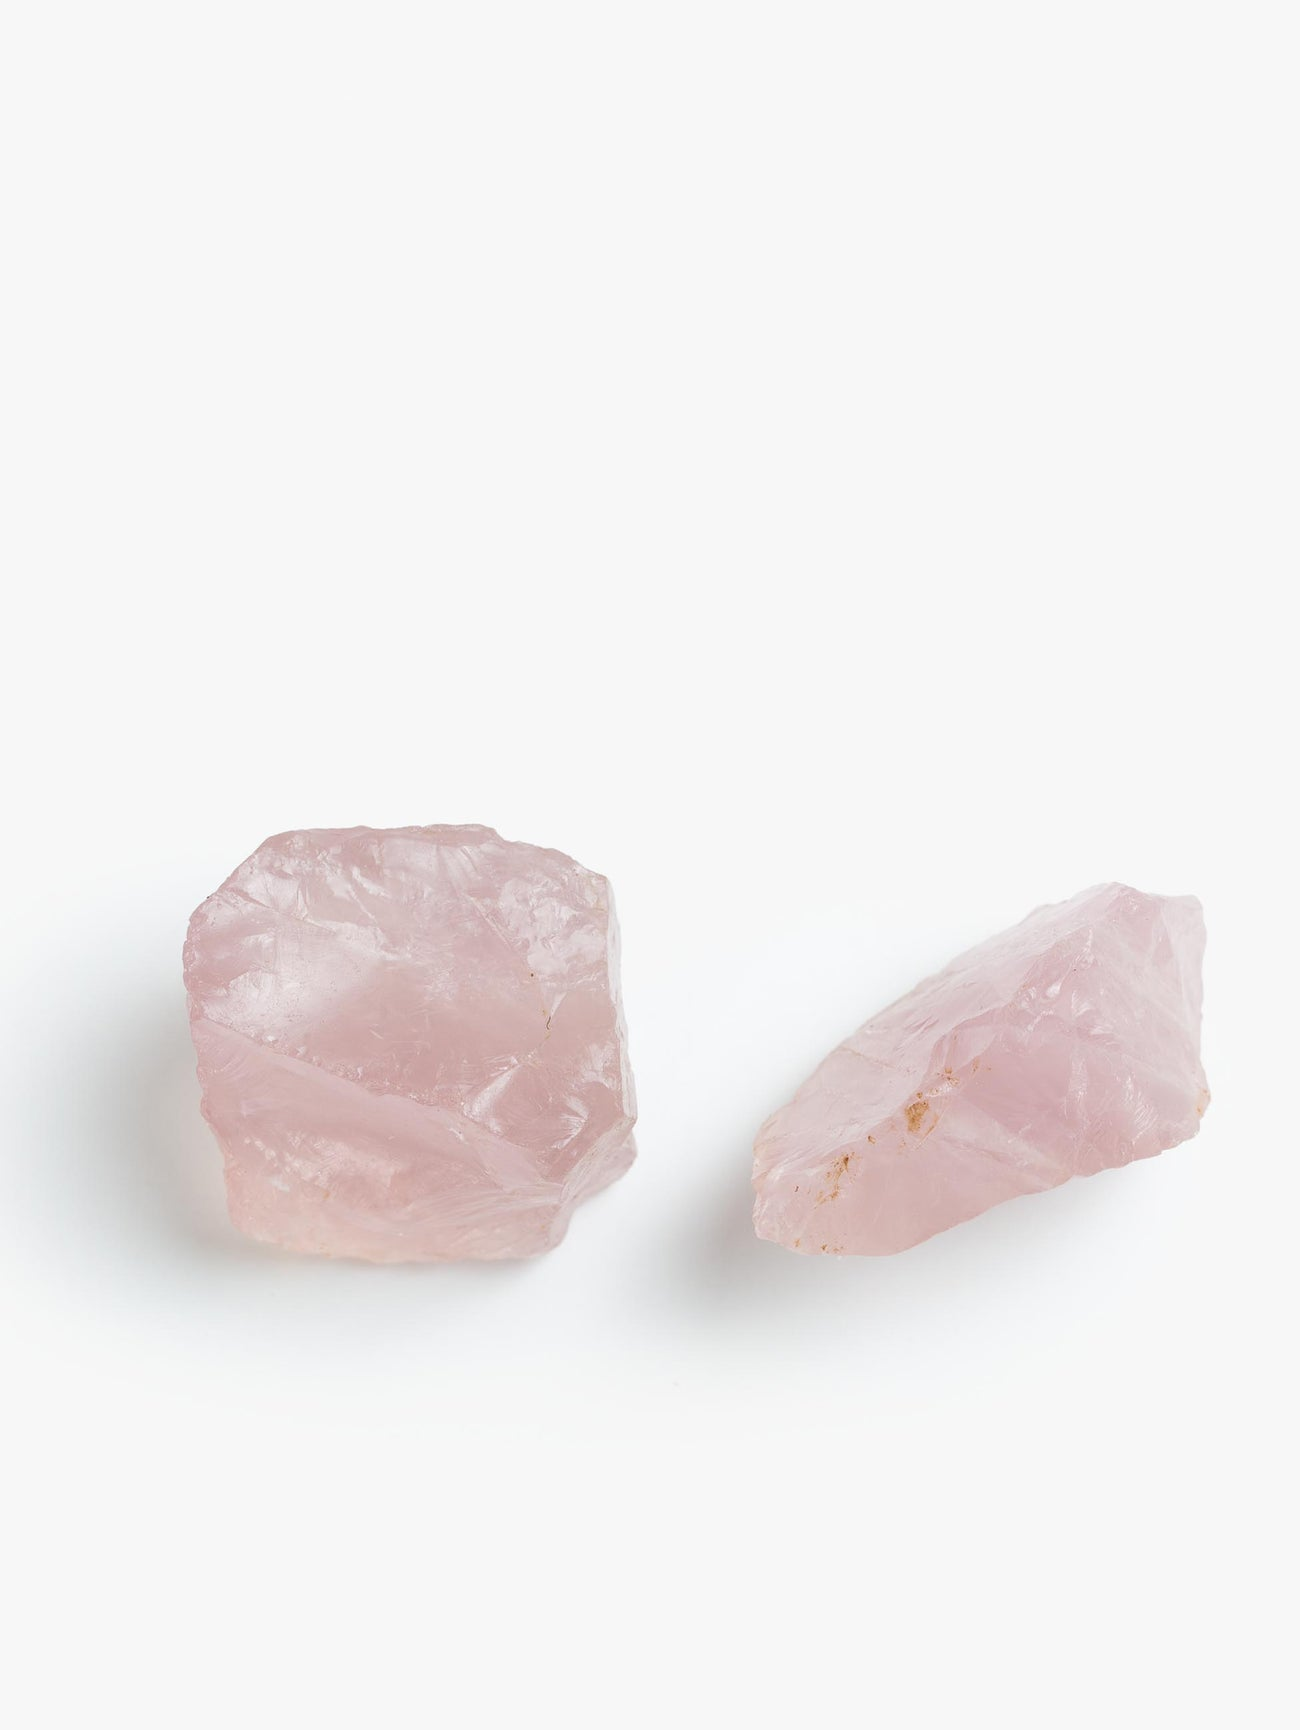 Rose Quartz Chunks Single - Multicolor